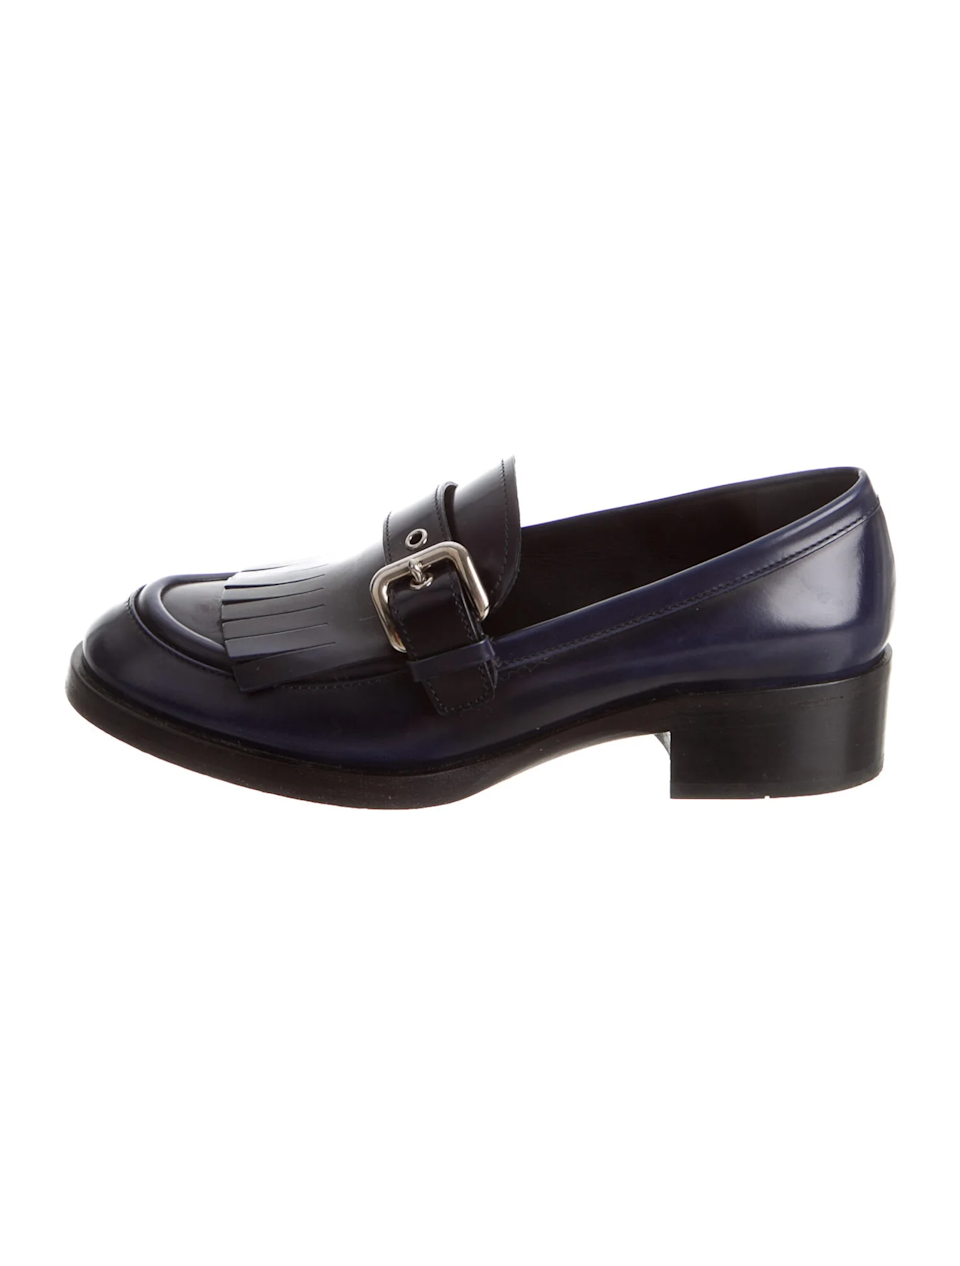 """<br><br><strong>Prada</strong> Leather Fringe Trim Accent Loafers, $, available at <a href=""""https://go.skimresources.com/?id=30283X879131&url=https%3A%2F%2Fwww.therealreal.com%2Fproducts%2Fwomen%2Fshoes%2Fflats%2Fprada-leather-fringe-trim-accent-loafers-86j2h%3Fposition%3D44"""" rel=""""nofollow noopener"""" target=""""_blank"""" data-ylk=""""slk:The RealReal"""" class=""""link rapid-noclick-resp"""">The RealReal</a>"""